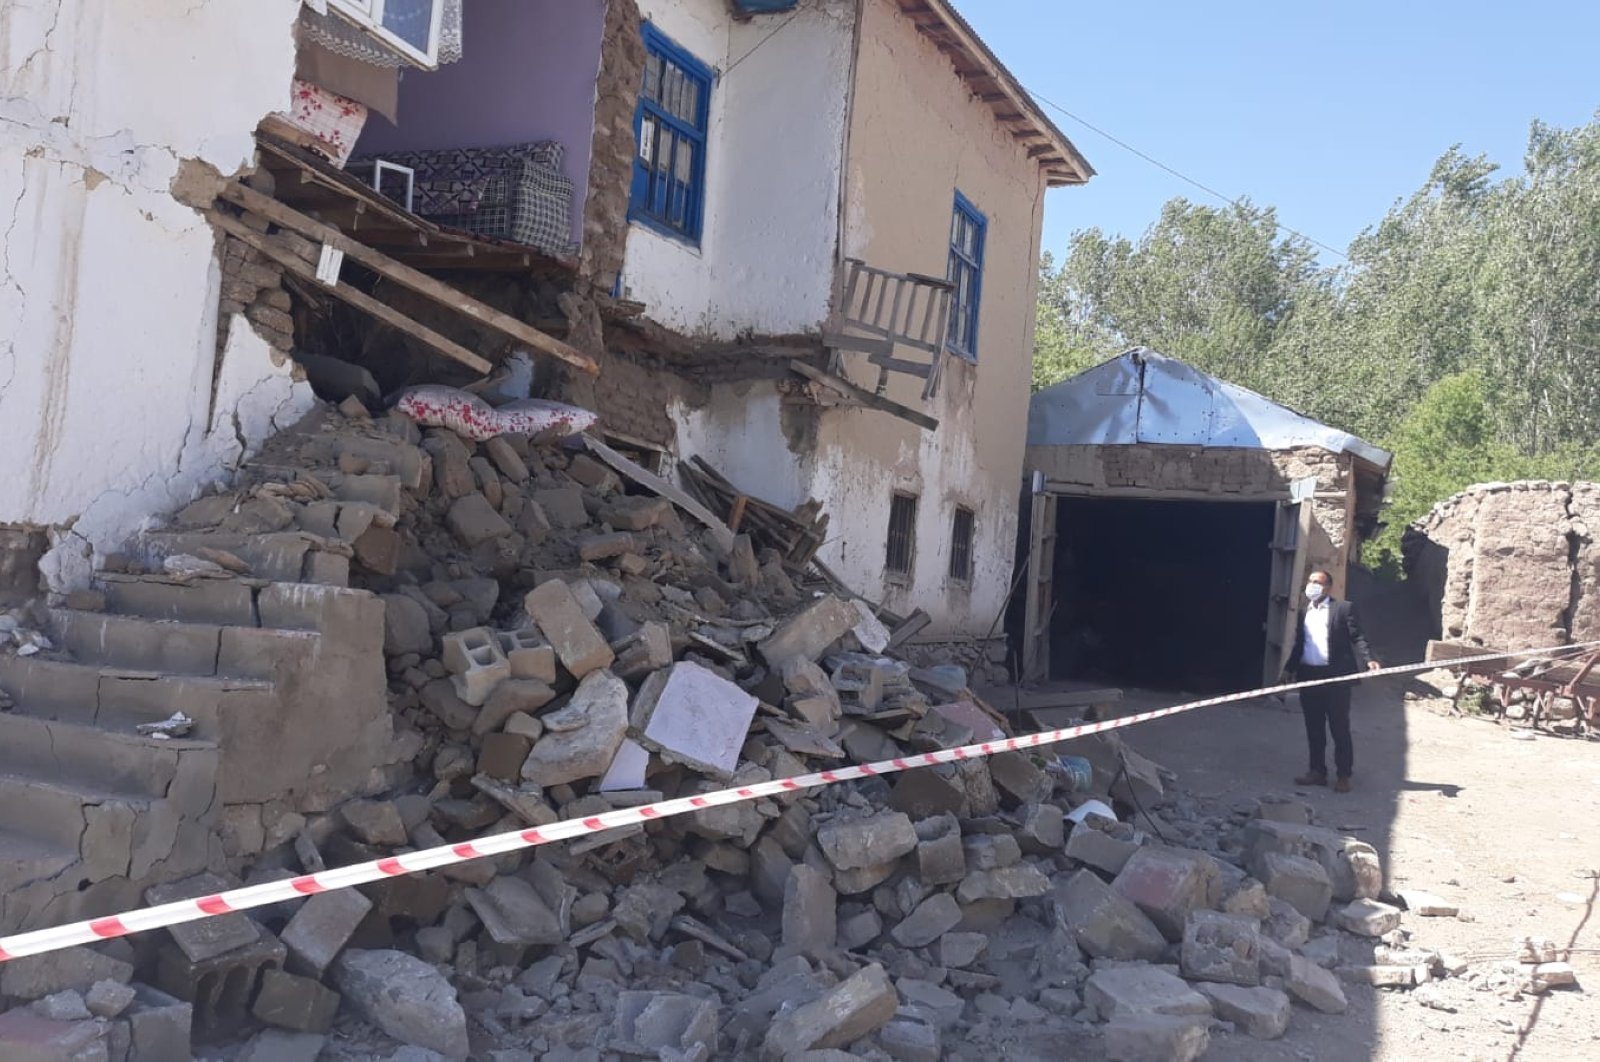 A man stands outside a partially collapsed building in the Gürpınar district, in Van, Turkey, June 25, 2020. (AA Photo)